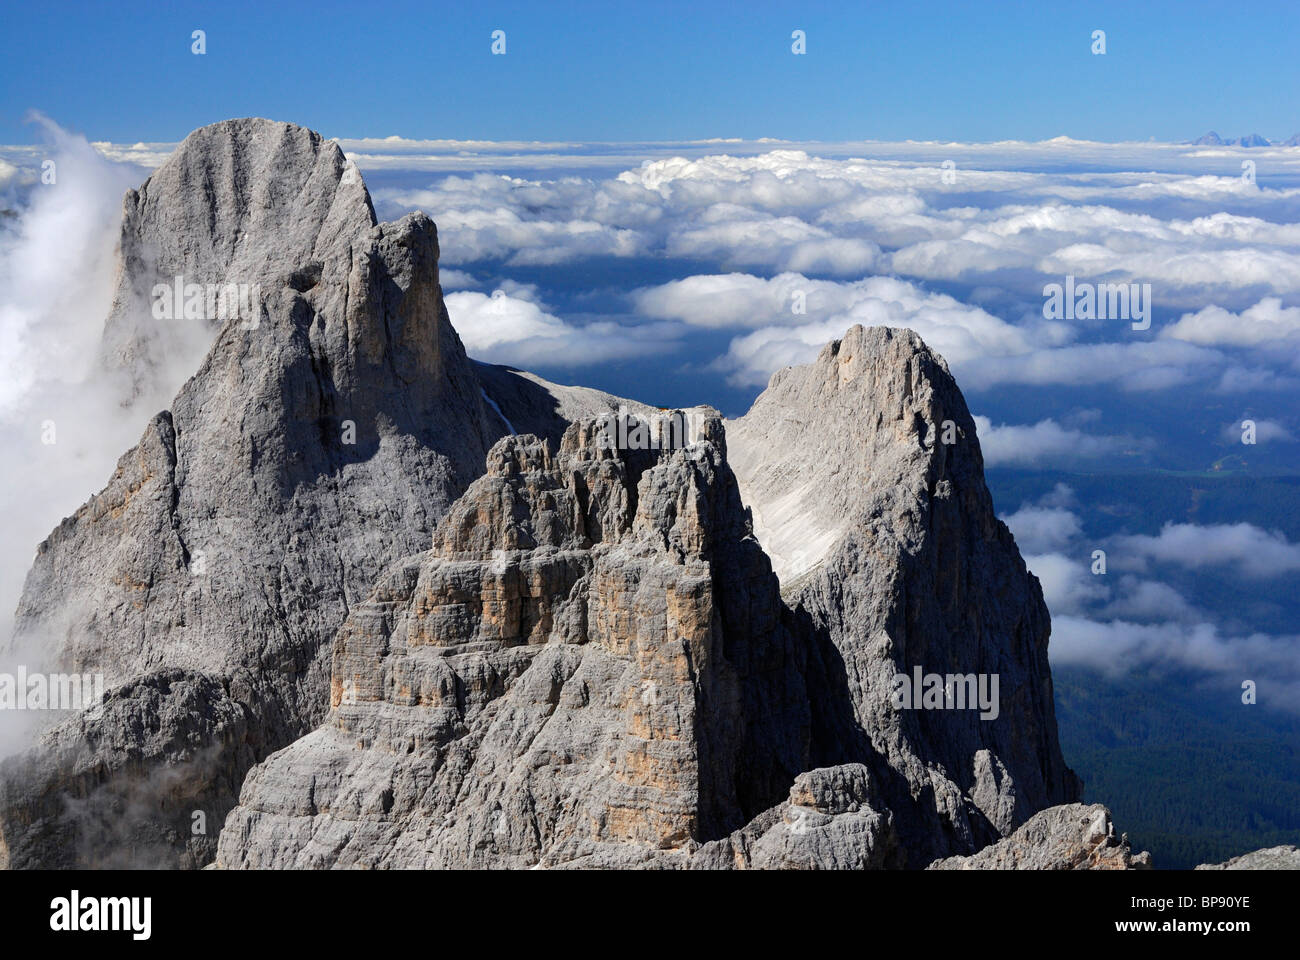 Rosengartenspitze, Vajolet Towers and King Laurin mountain face, Rosengarten group, Dolomites, Trentino-Alto Adige/South - Stock Image